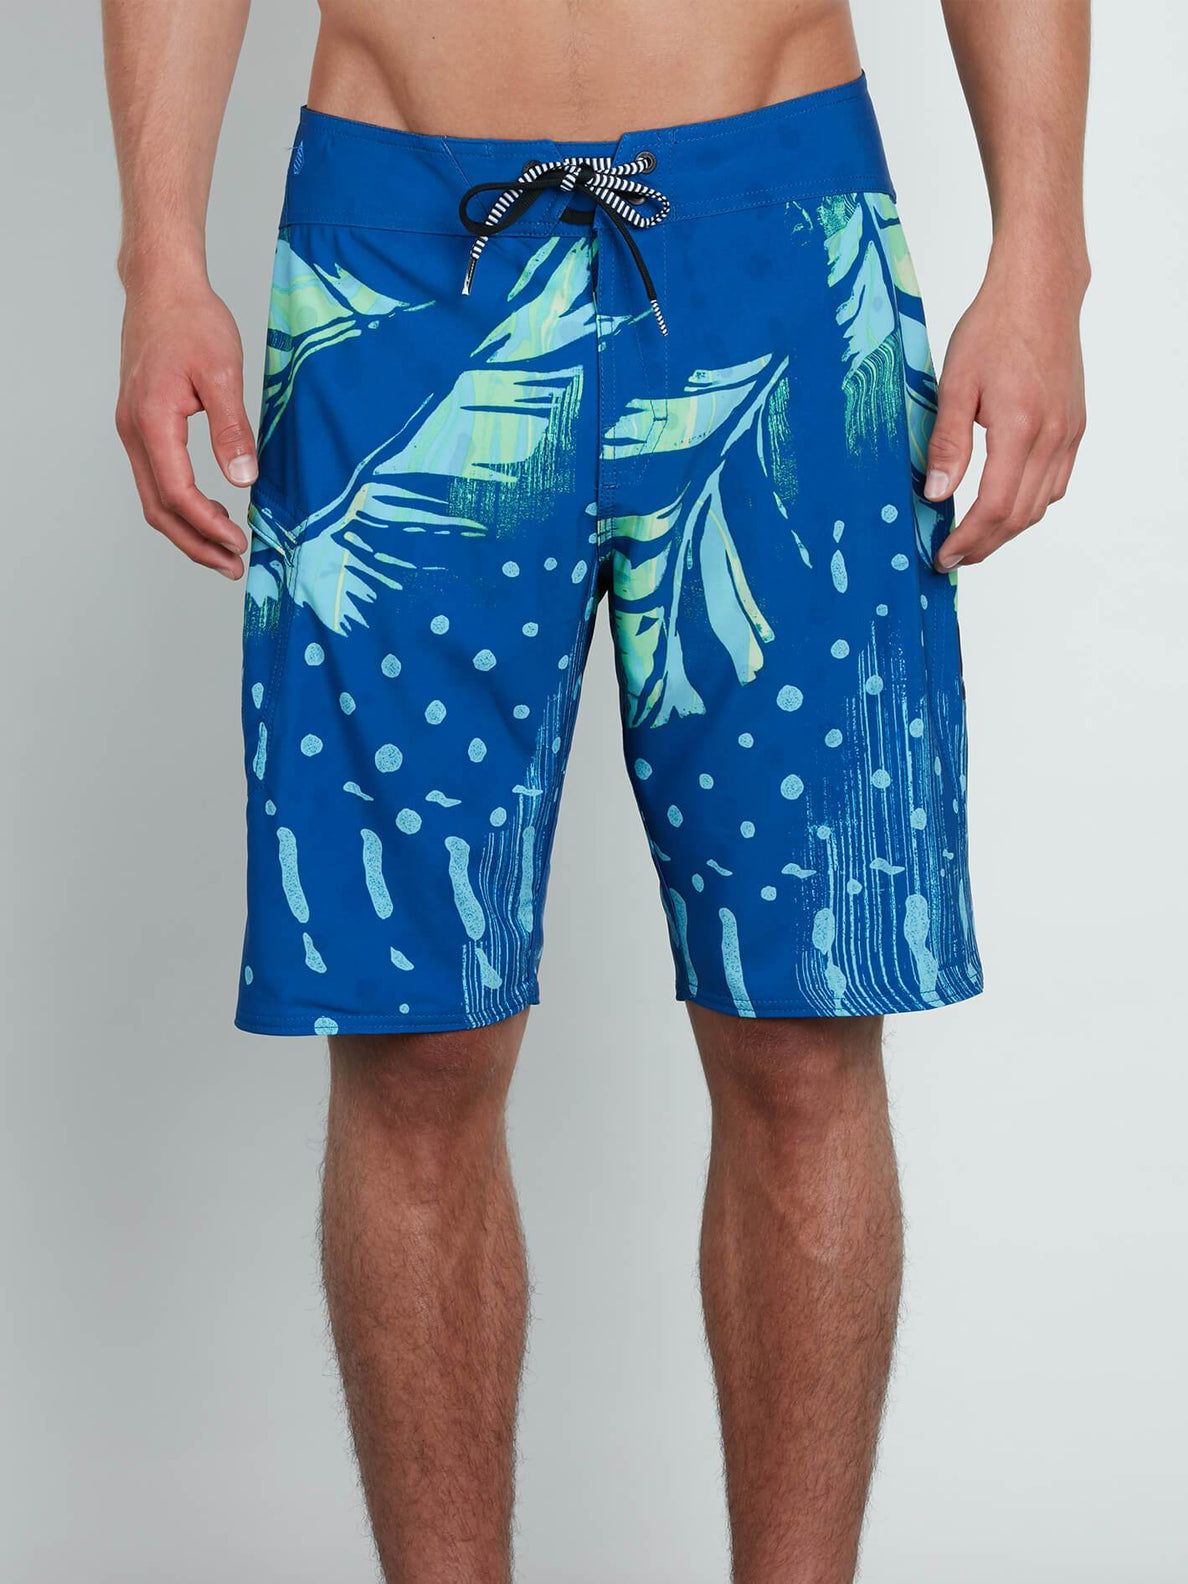 Flora Dot Mod Boardshorts In Camper Blue, Front View